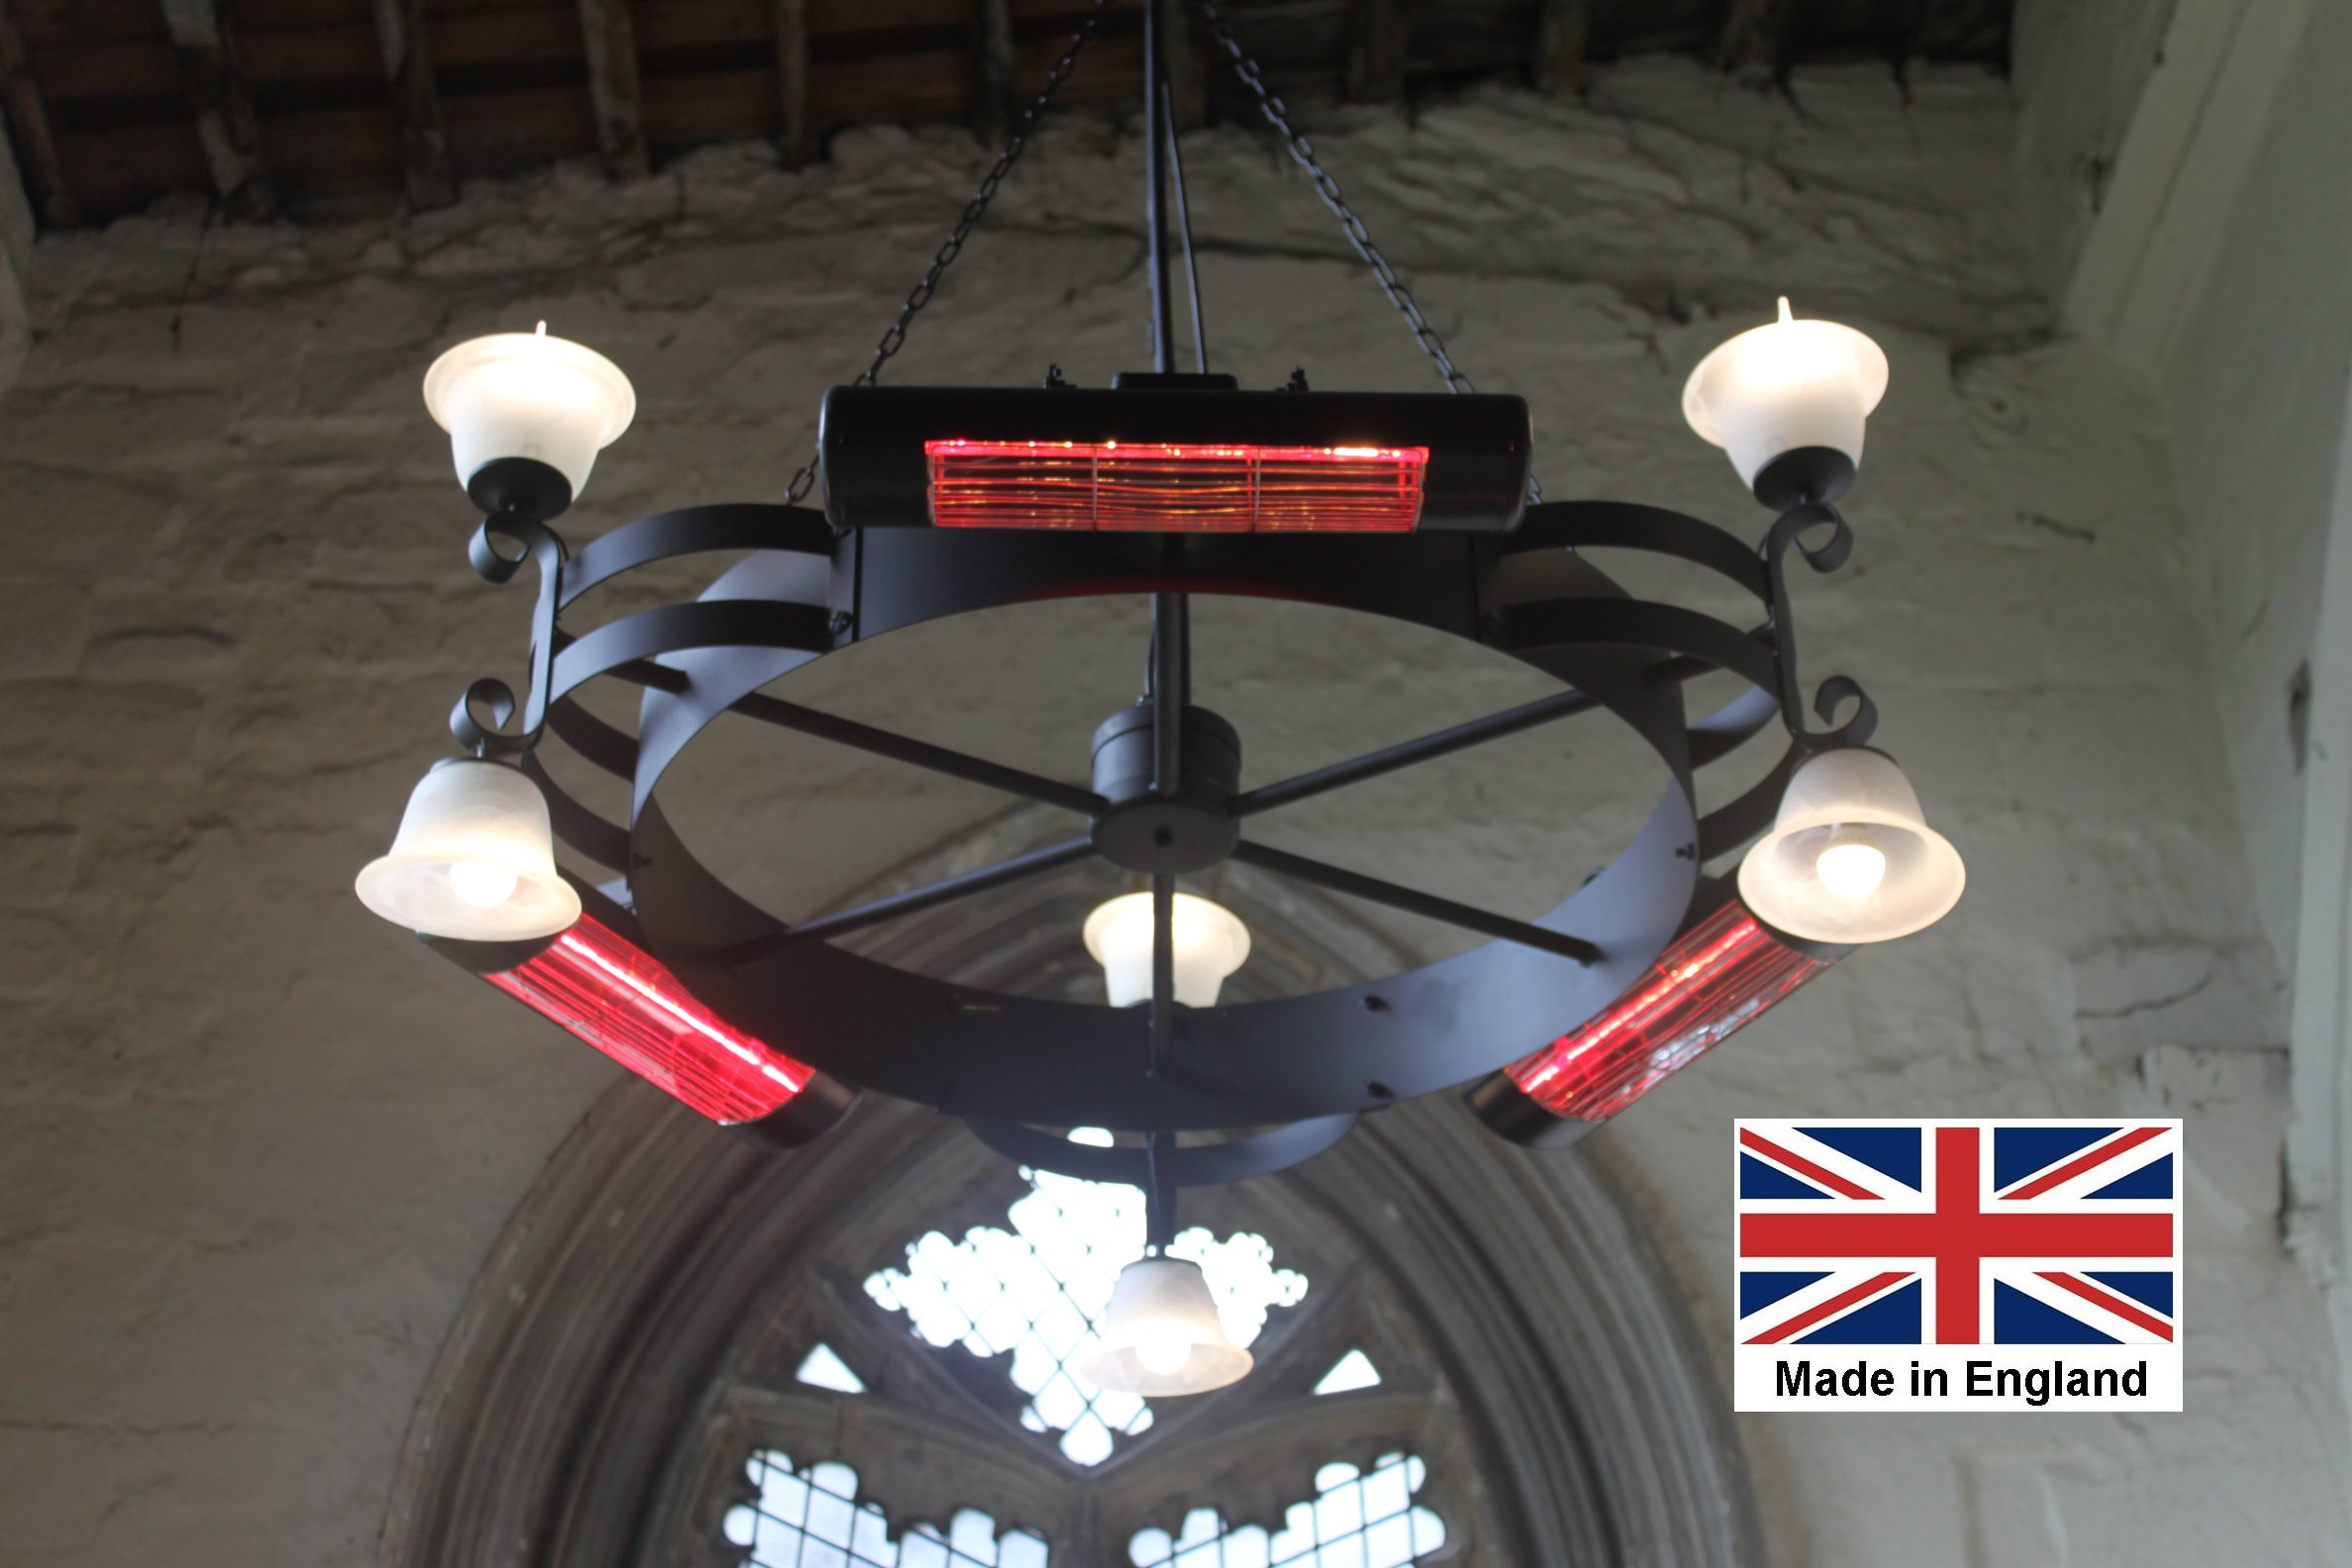 Chandelier Heater 6kW 'Gaddesby' Design - Directional